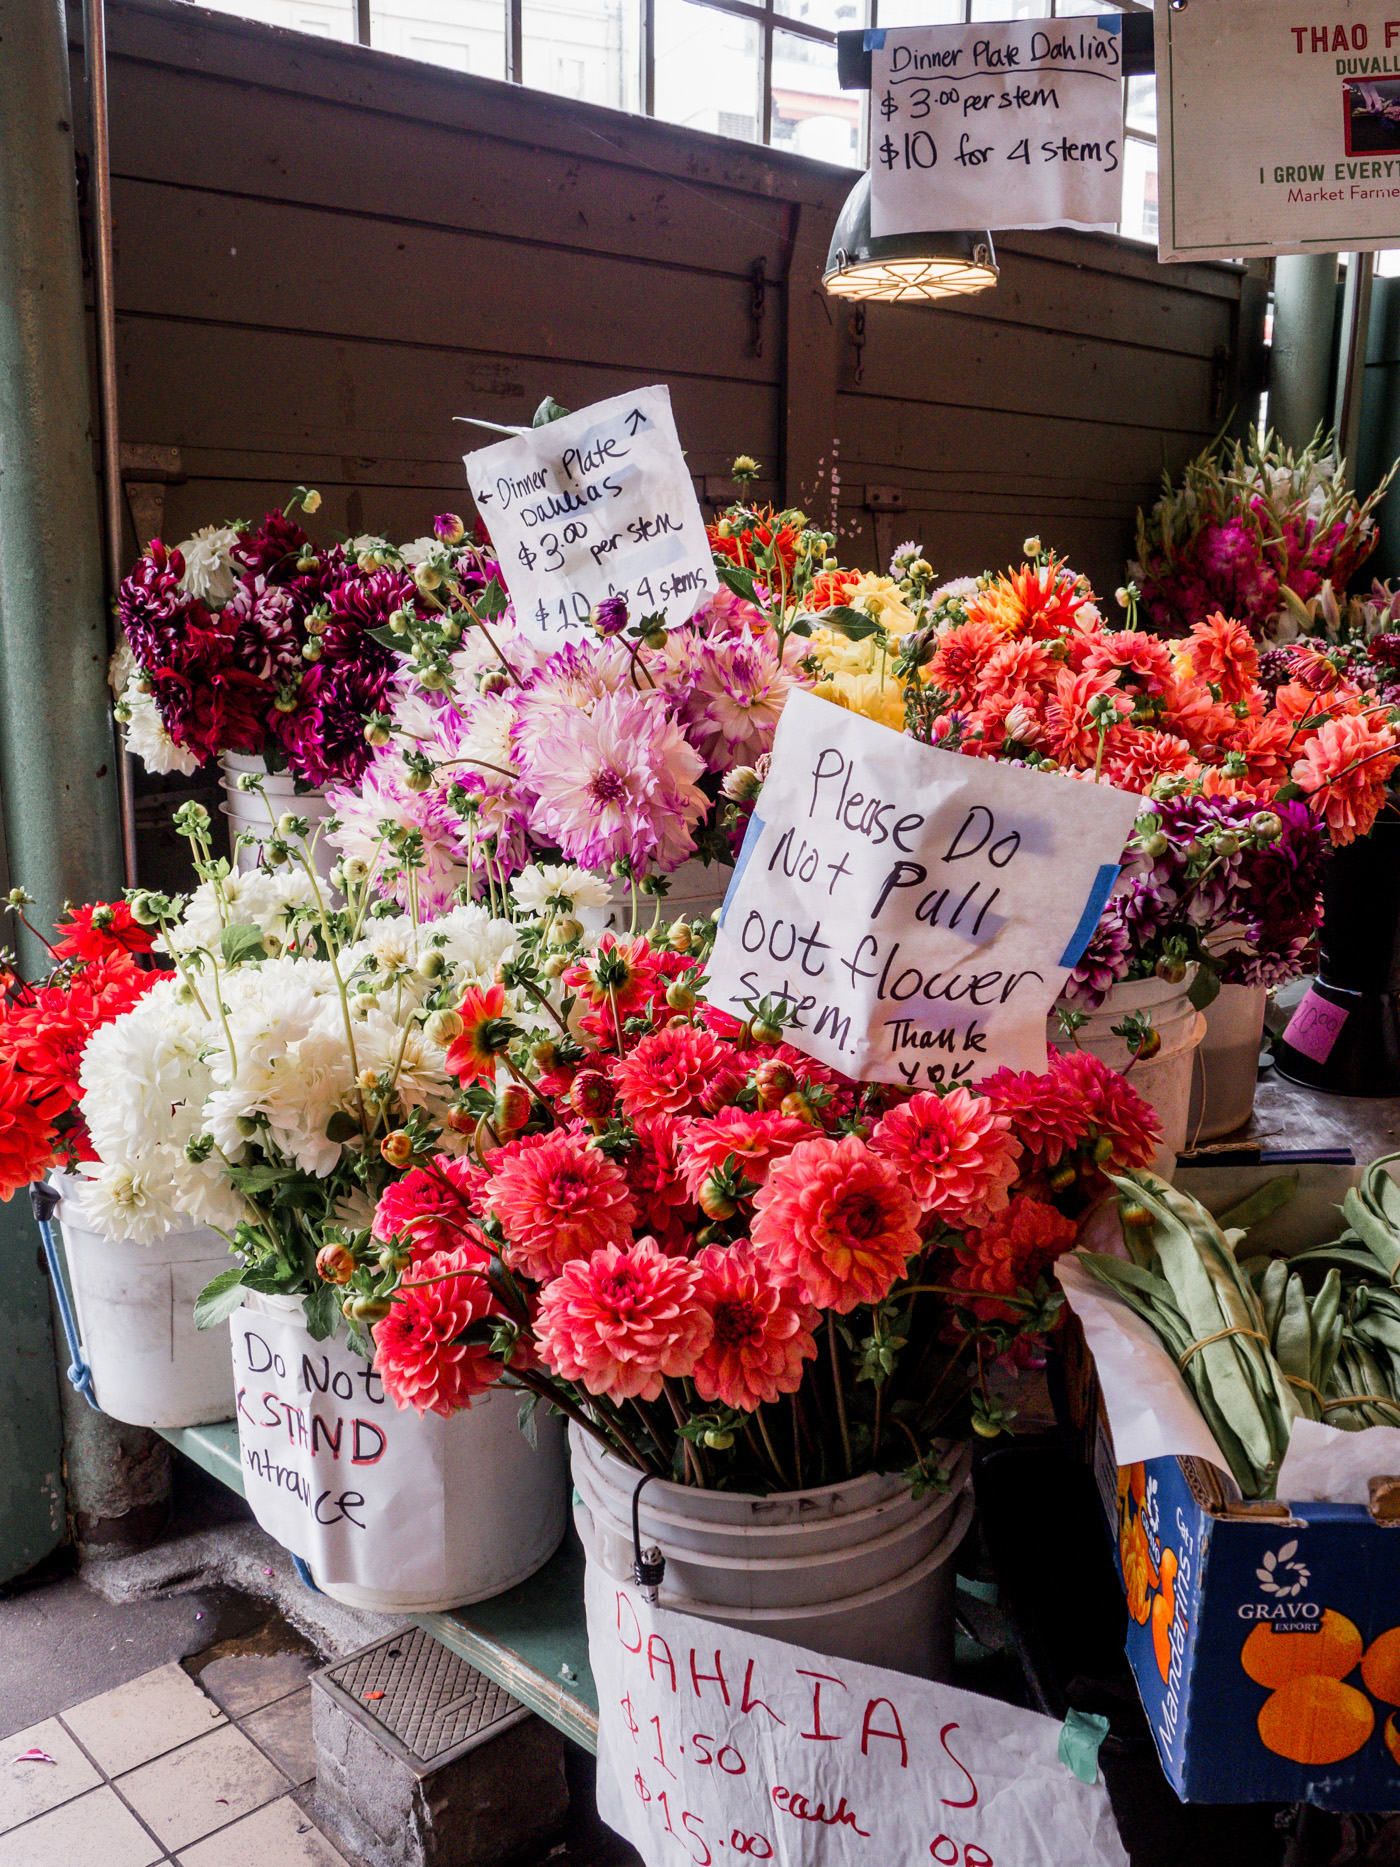 Bunches of cheap flowers for sale at the Pike Place Market in Seattle